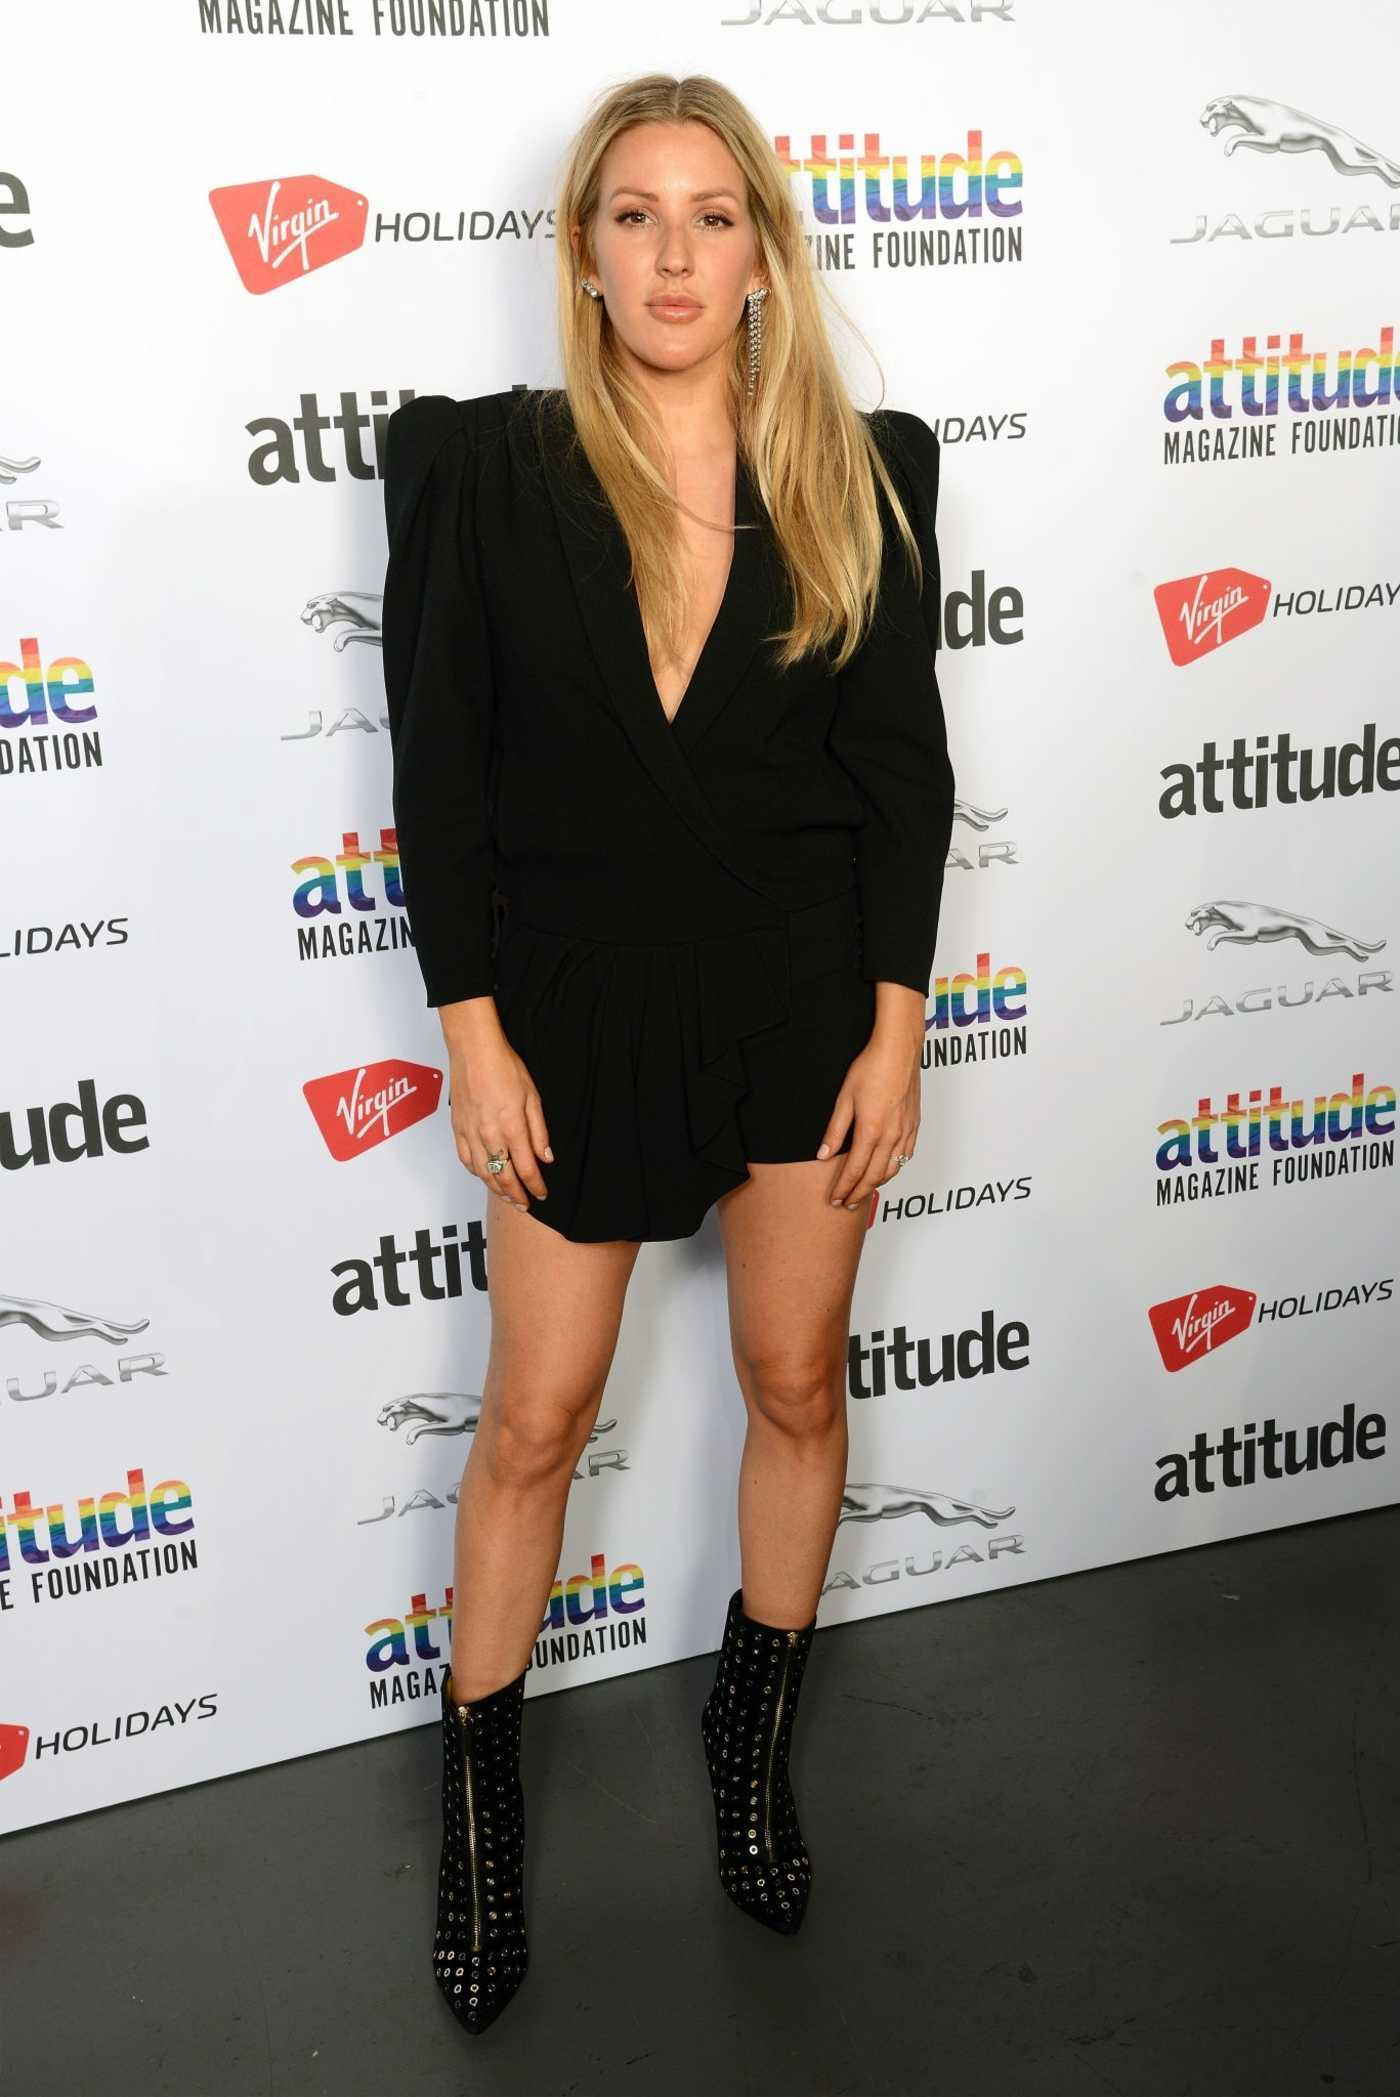 Ellie Goulding Attends 2018 Attitude Magazine Awards in London 10/11/2018